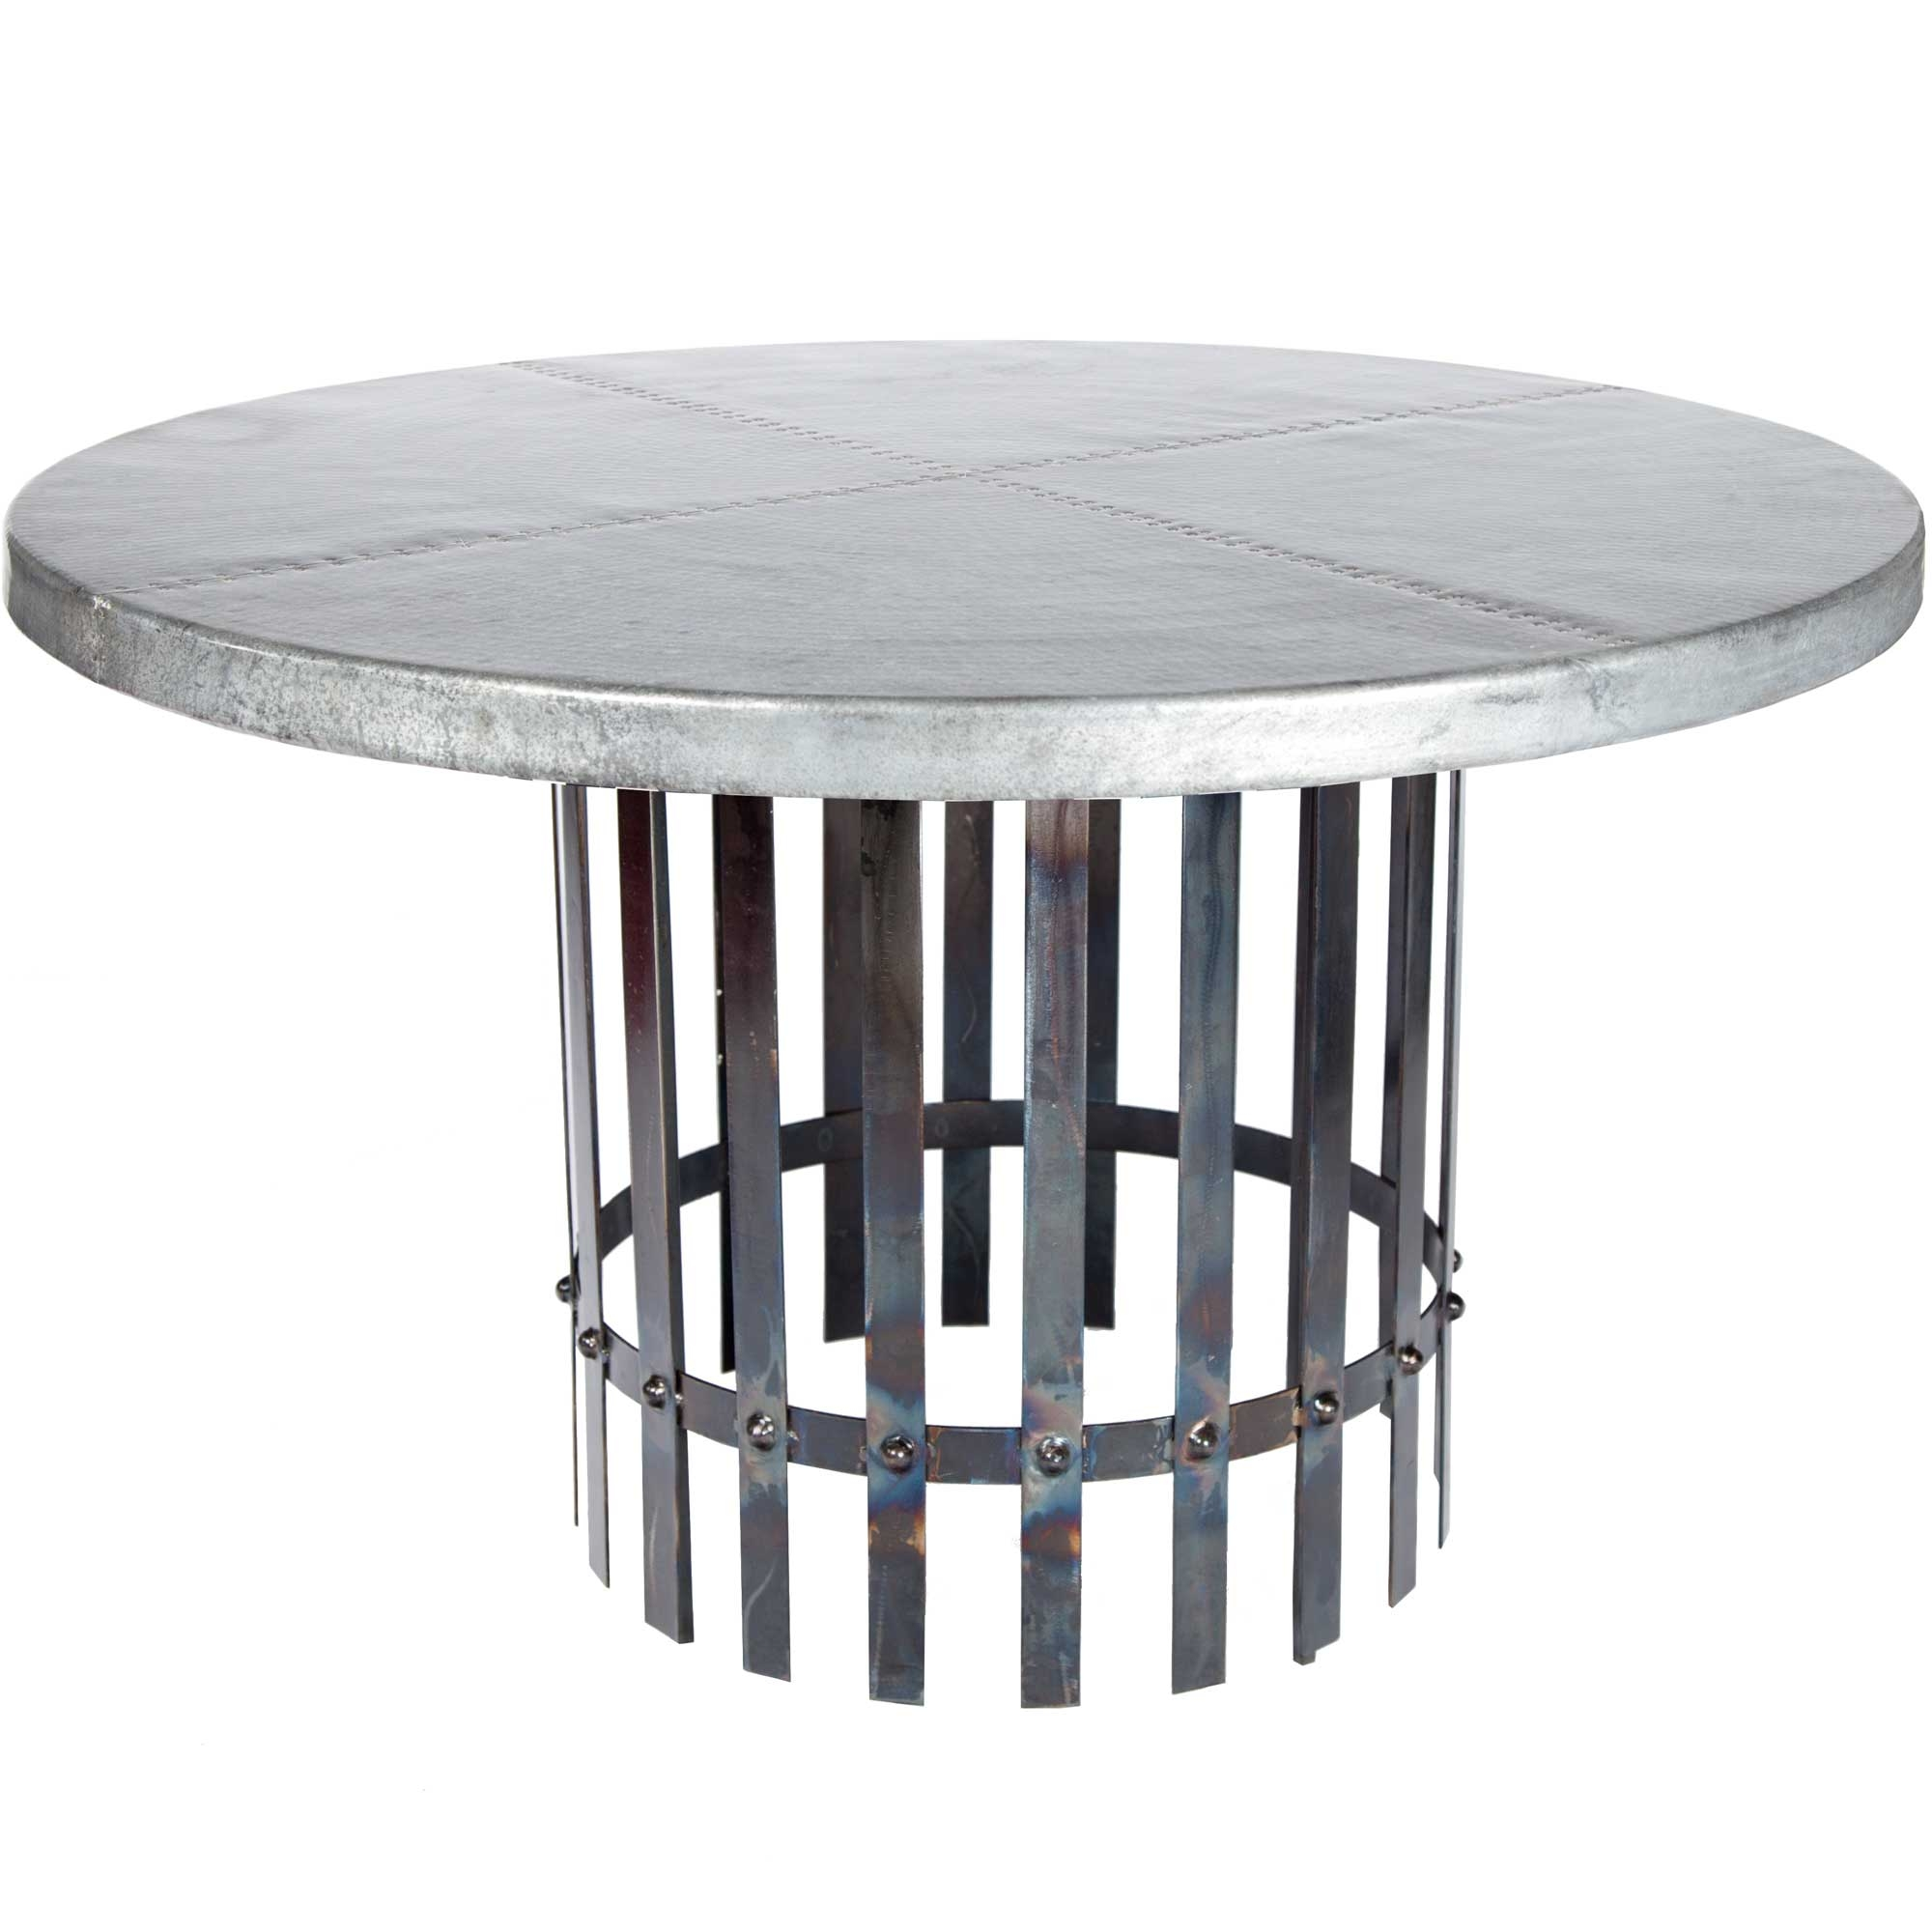 Ashton Iron Dining Table With 54 Round Hammered Zinc Top